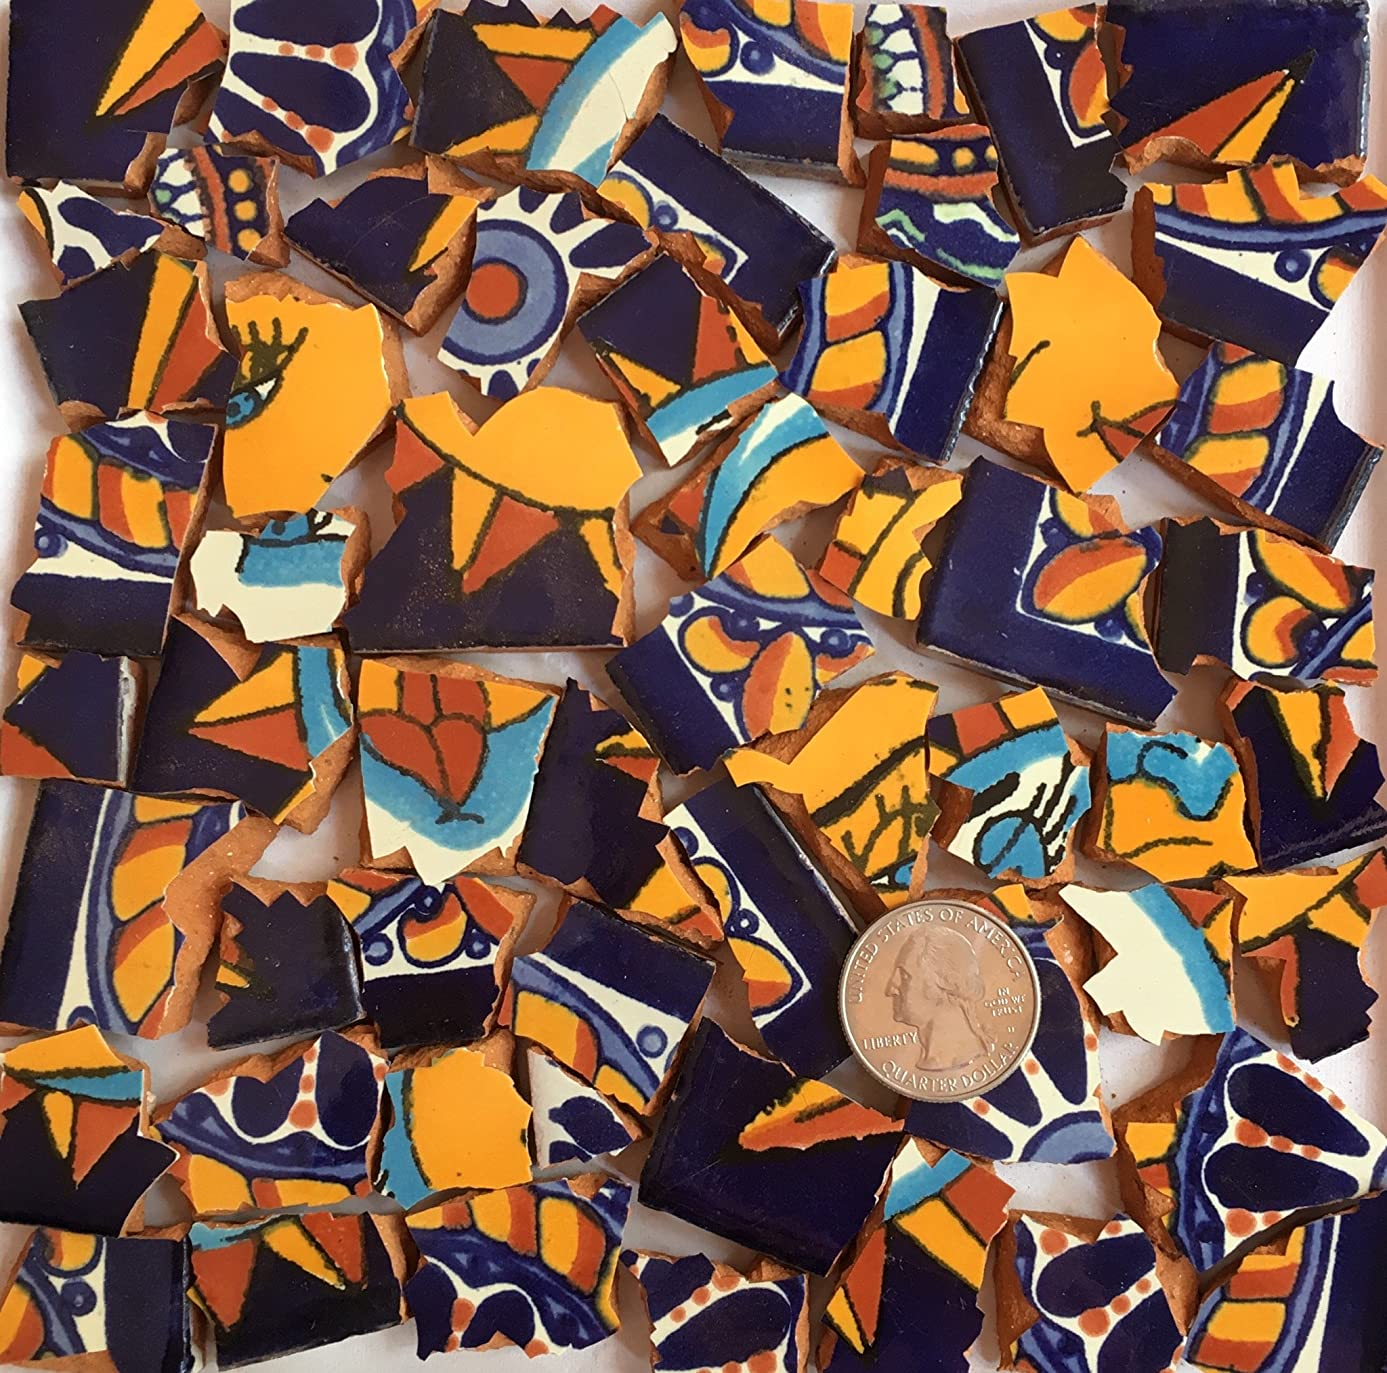 Mosaic Tiles Hand Cut Pieces Supply for Mosaics and Crafts Ready to Use Hand Painted and Cut Mexican Tile in Bright Color Coordinated Sets T 785